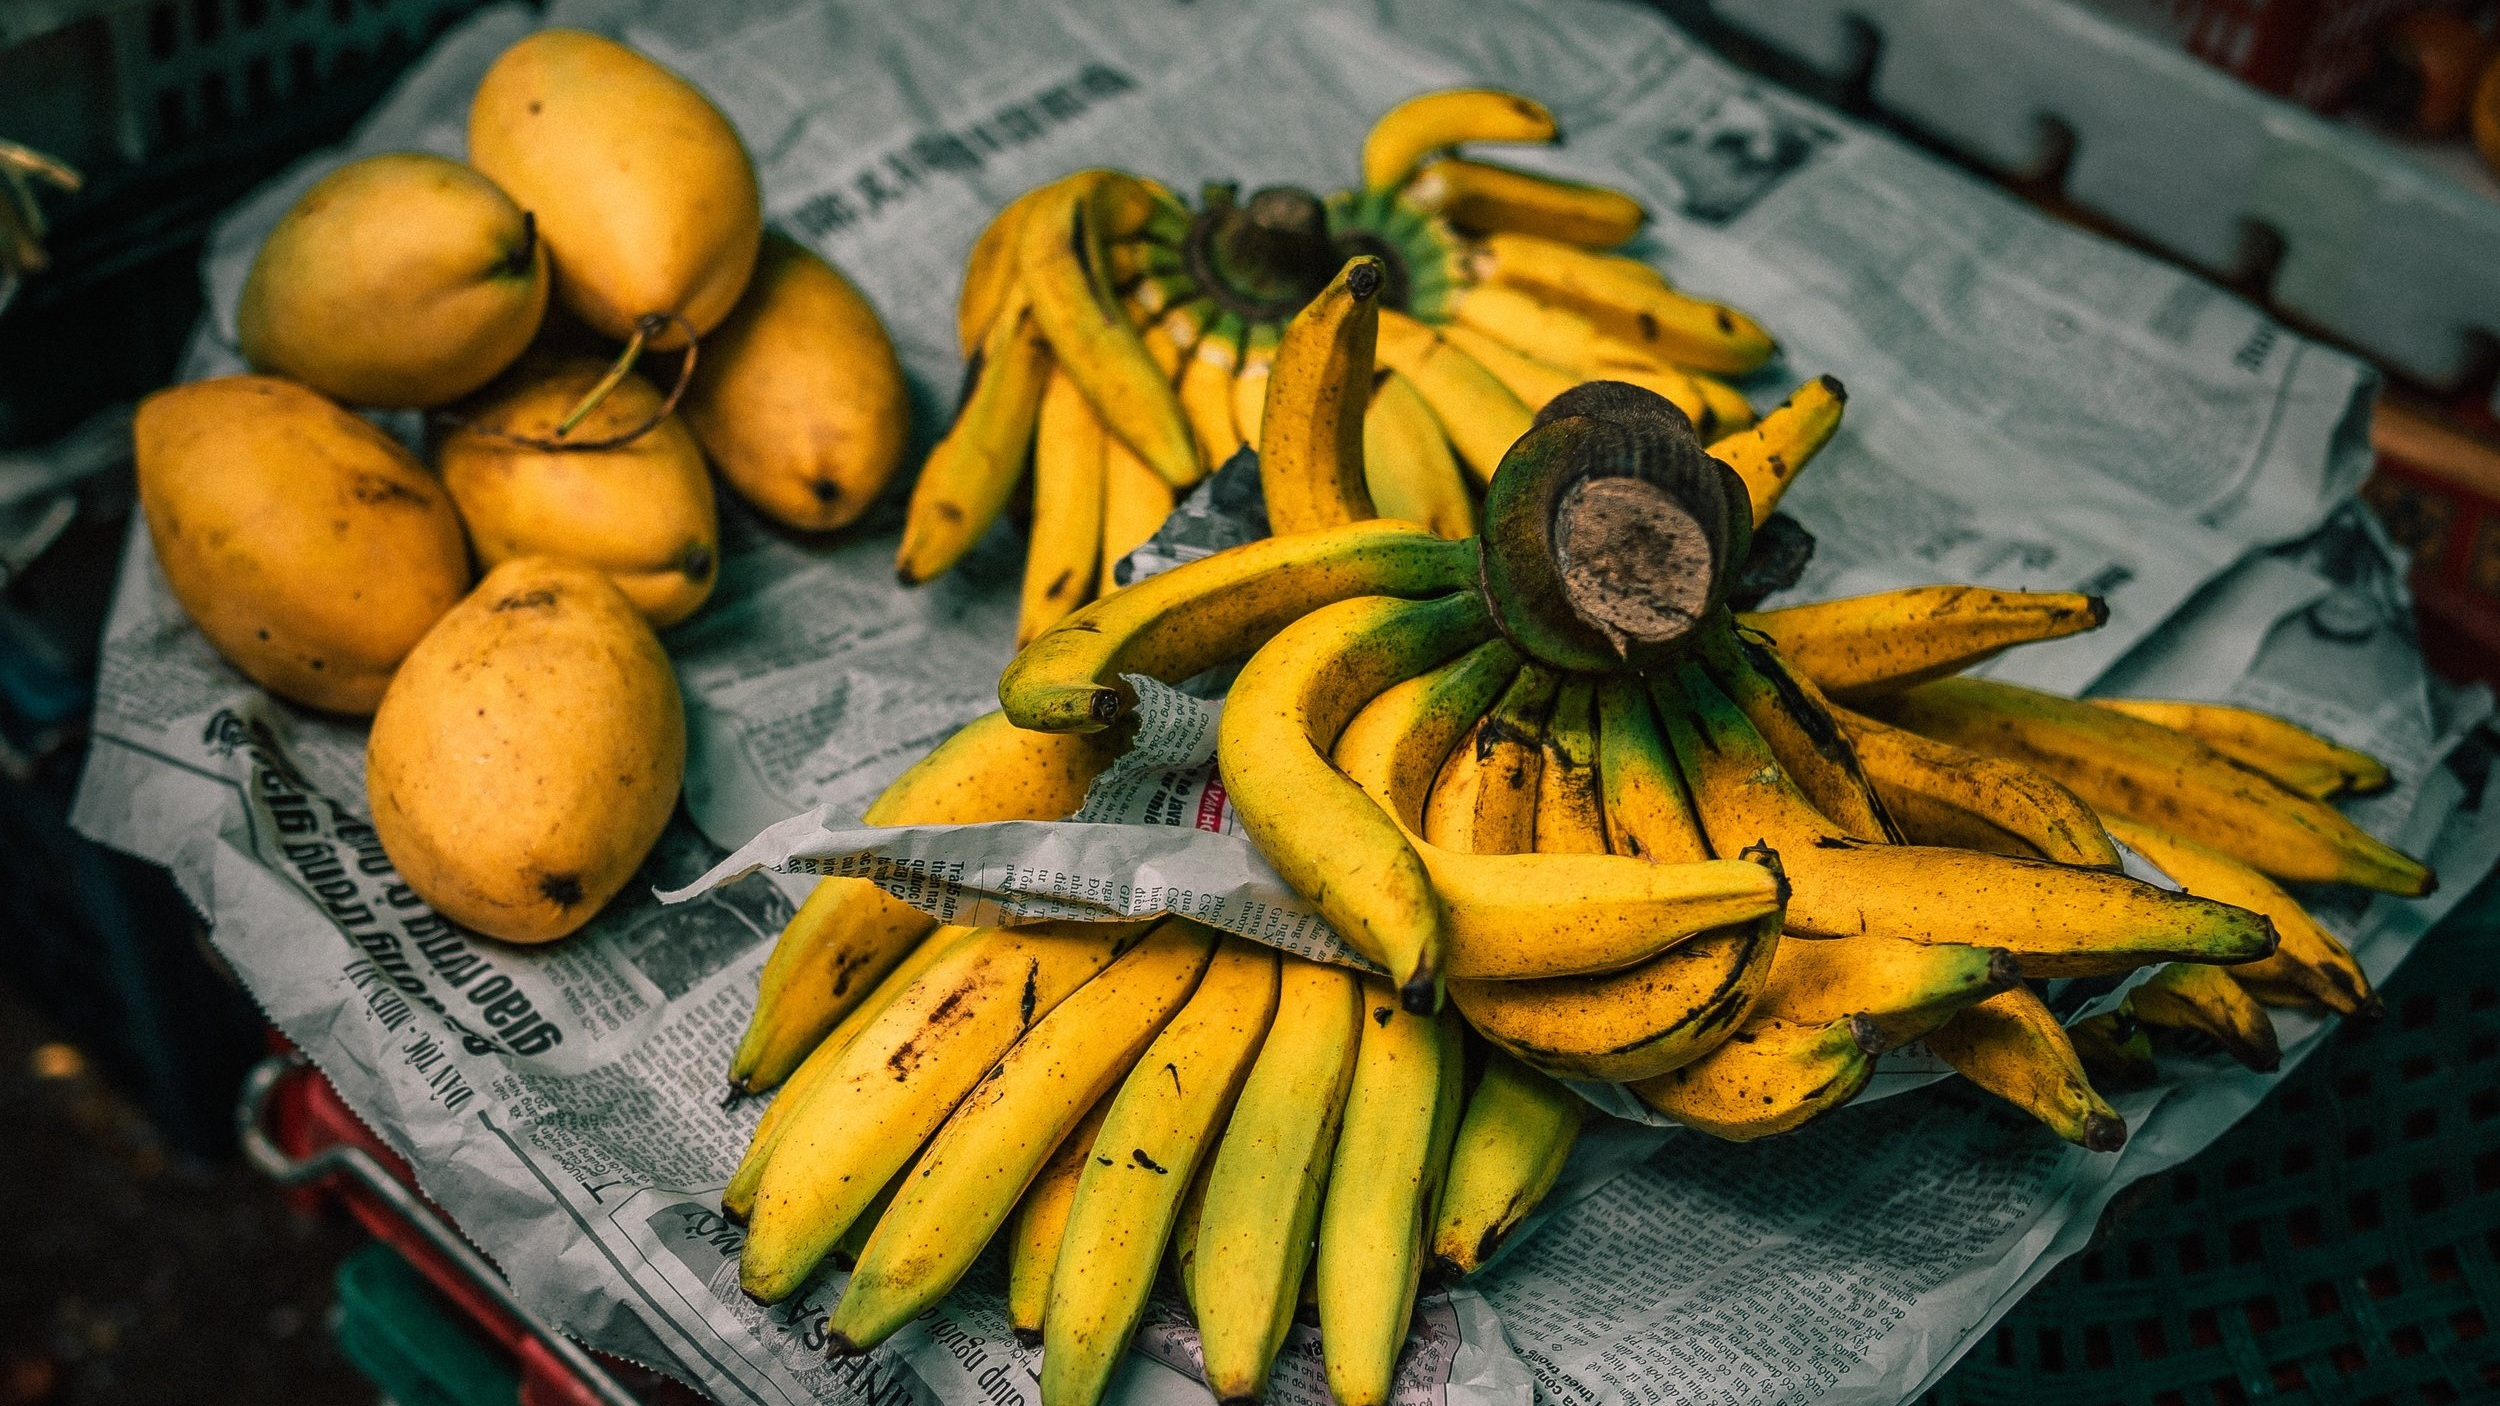 Does fruit make you fat? There are some fruits that have higher sugar content, but you'd need to eat unnaturally large quantities to gain weight. Photo Credit: Alice Young